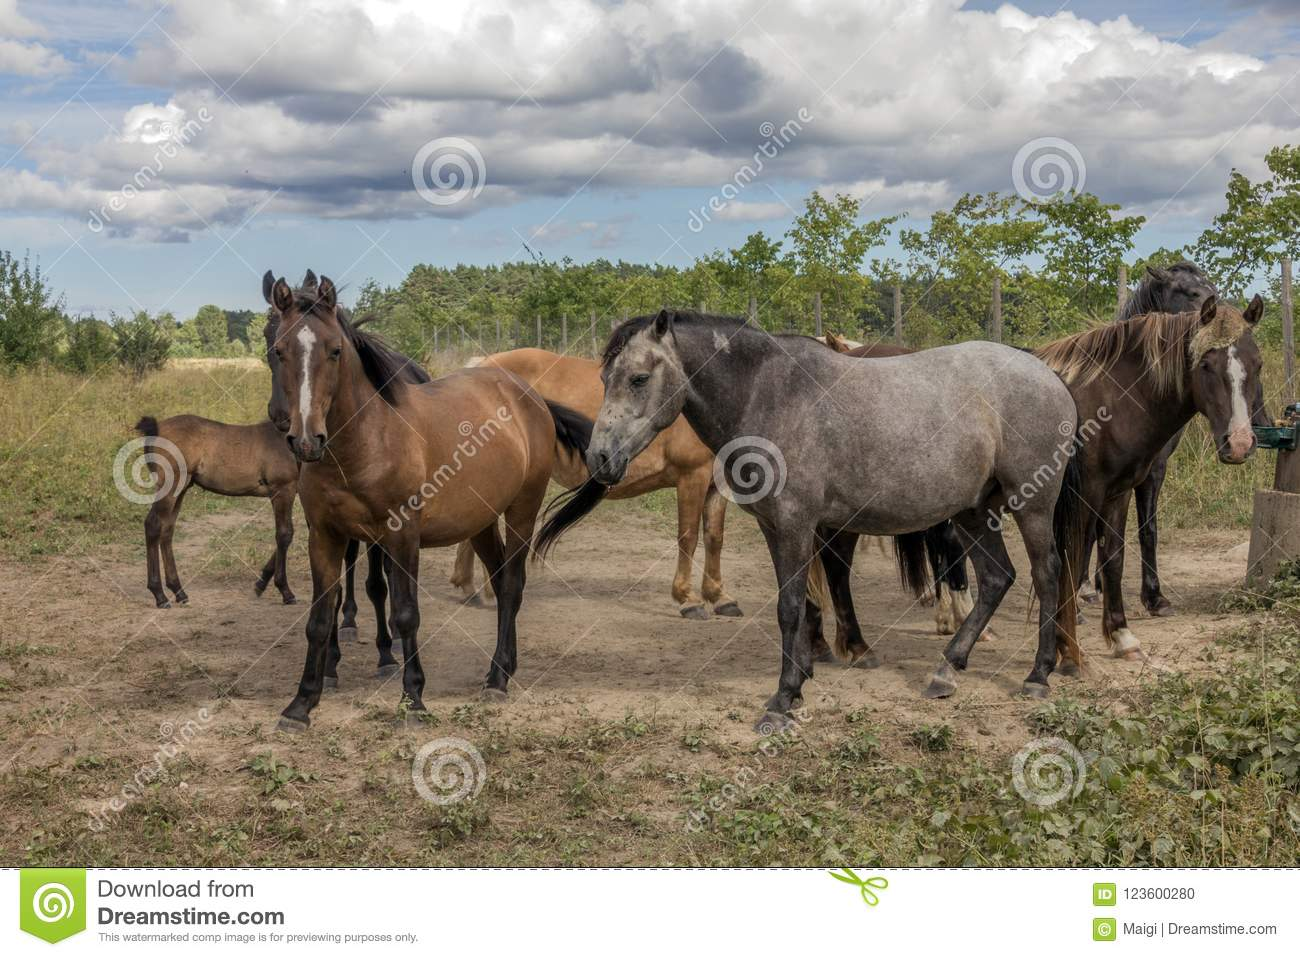 Download Horses on the pasture land stock photo. Image of farming - 123600280